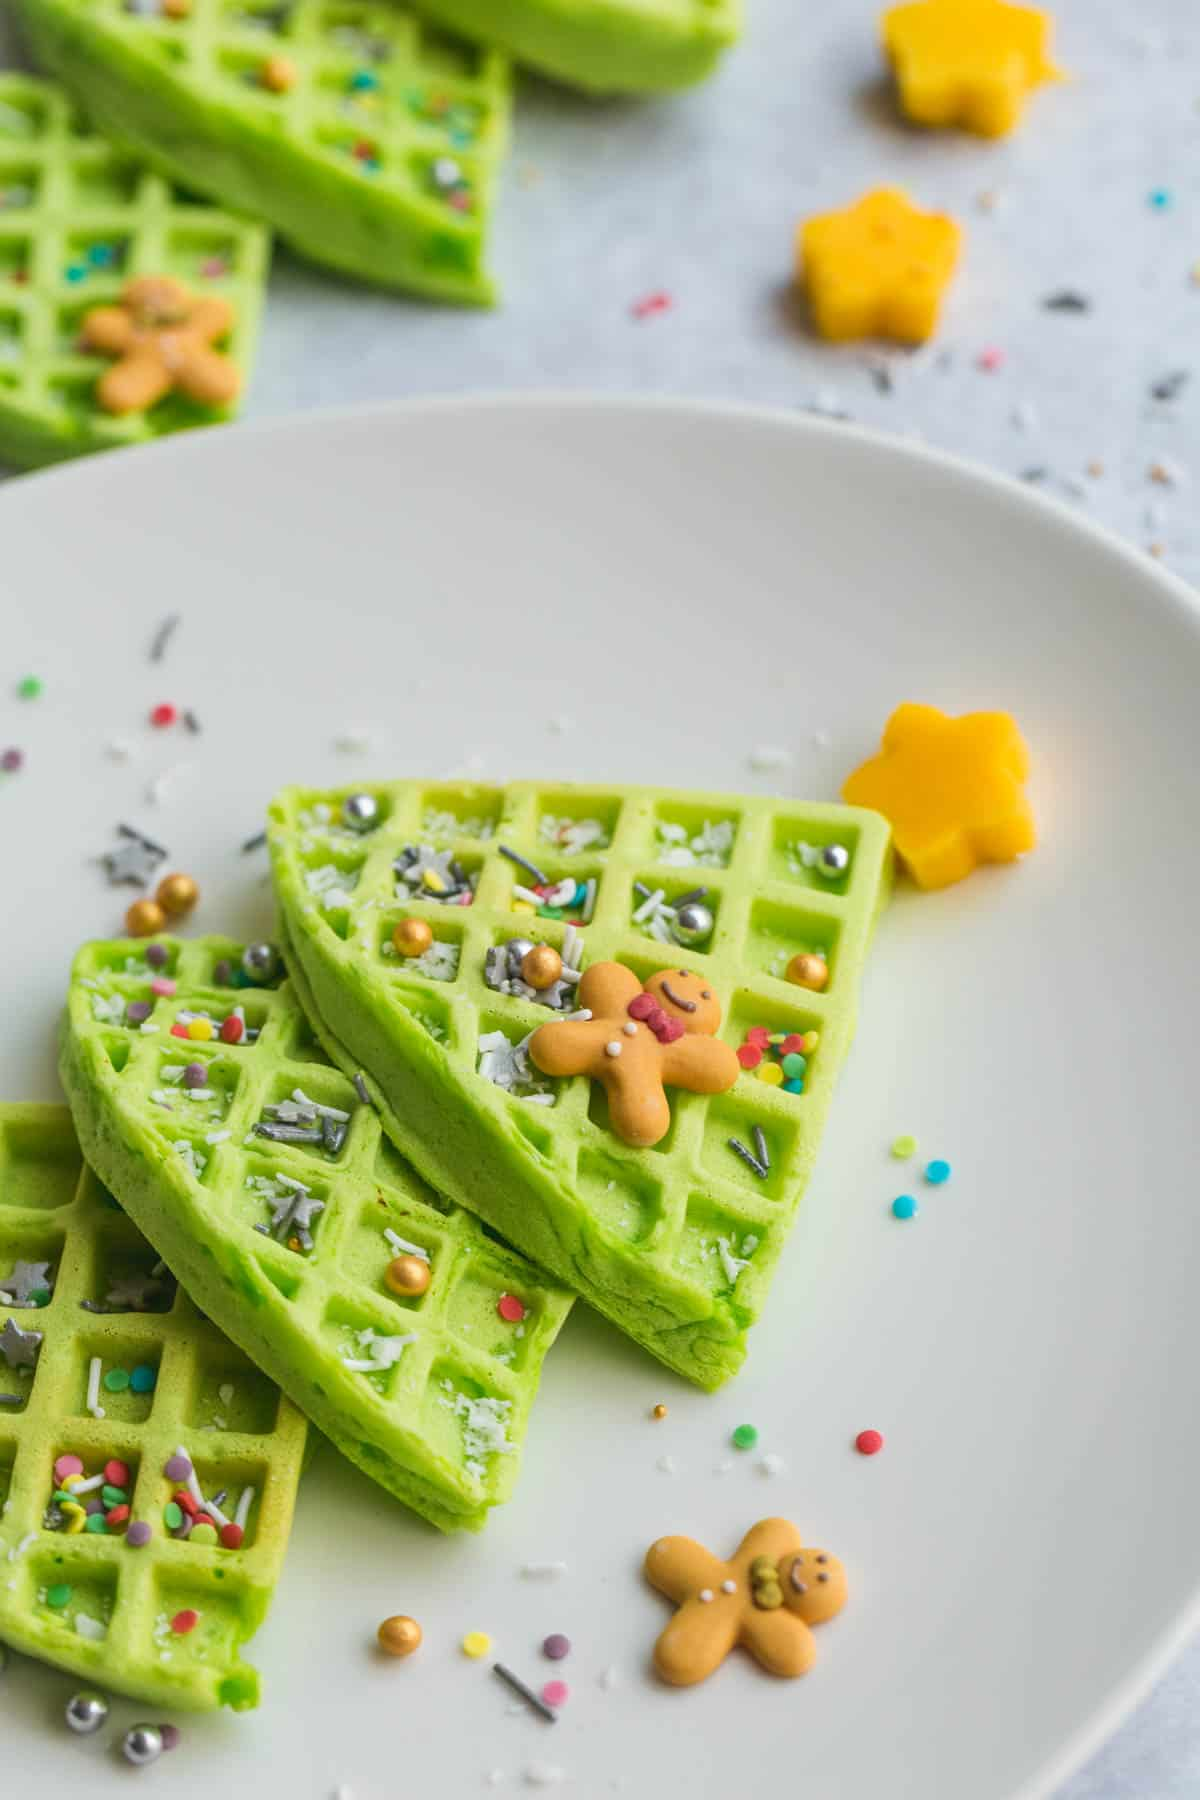 A close up image of the green Christmas tree waffle